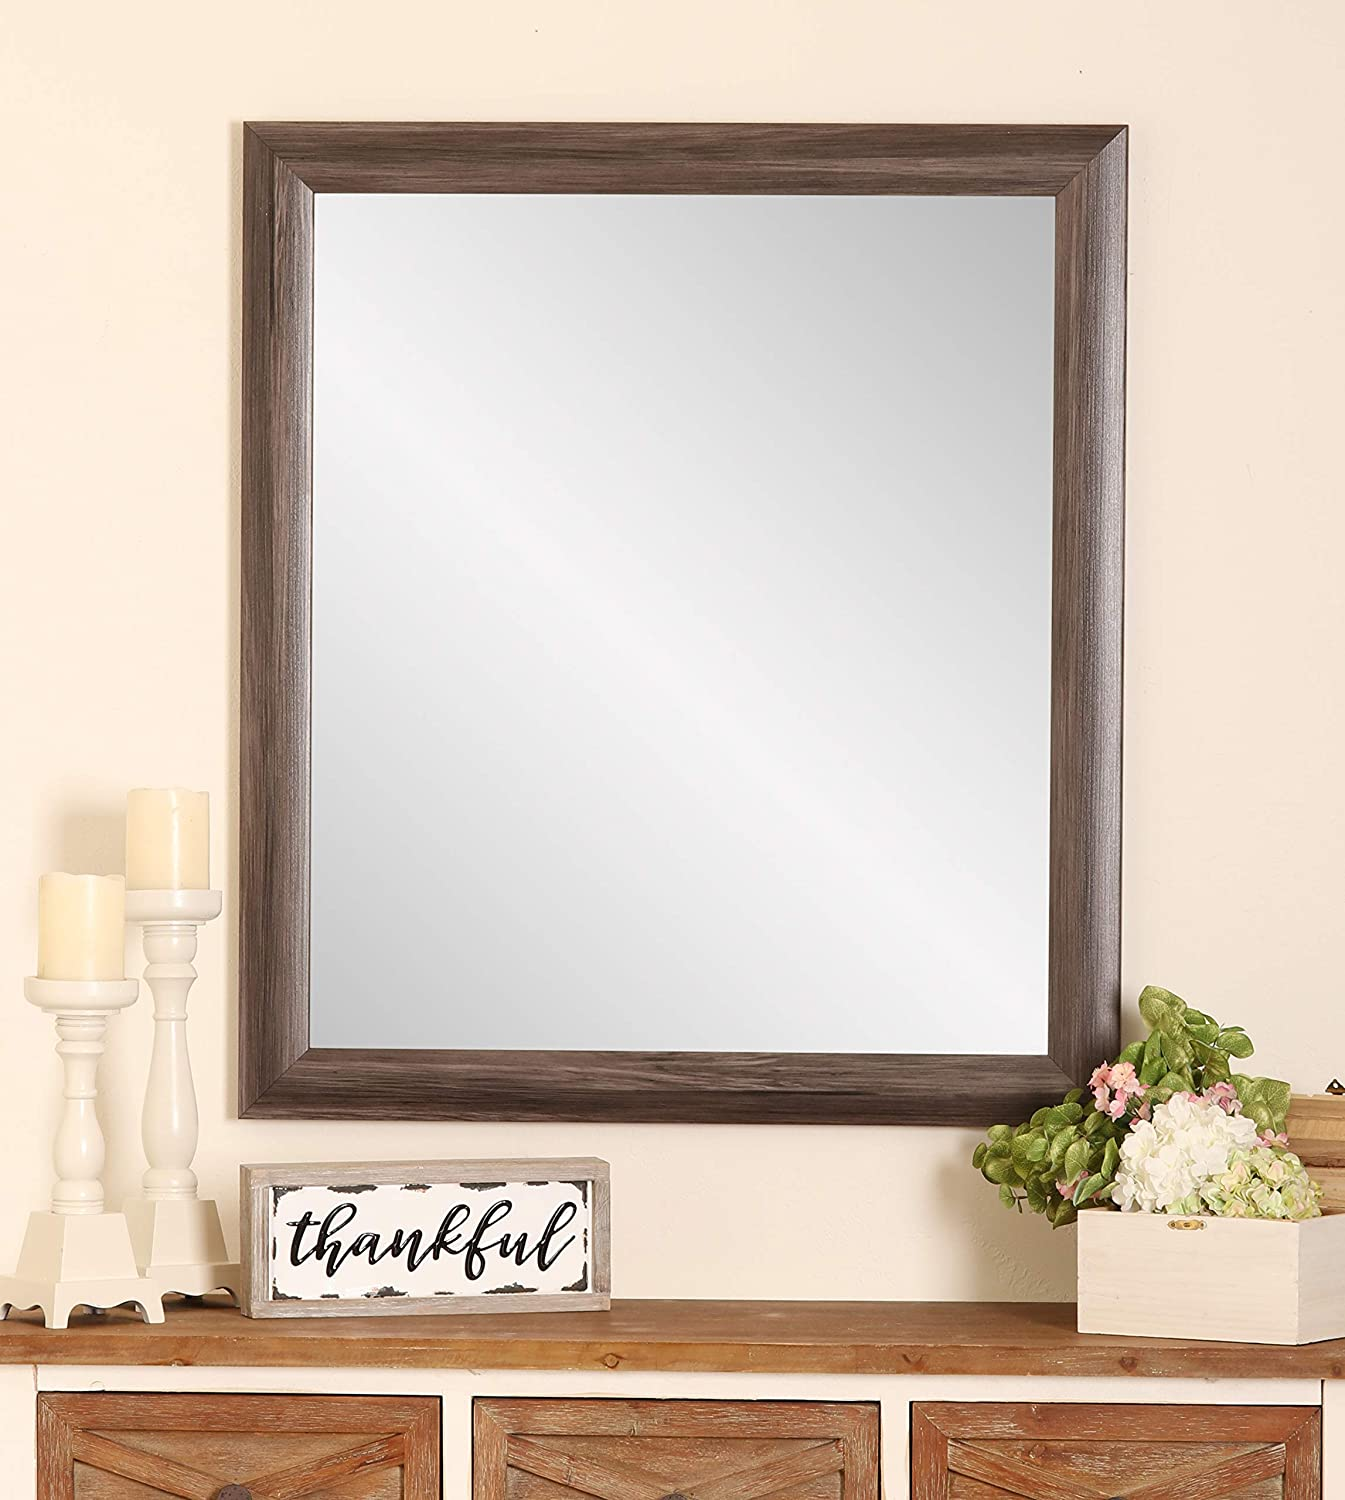 Wall-Mounted Mirrors Mirror Smart Mirror Touch Screen Led Bathroom Mirror Wall Mount Mirror Bathroom Mirror with Light Bathroom Mirror (color   Chrome, Size   50  70  3cm)